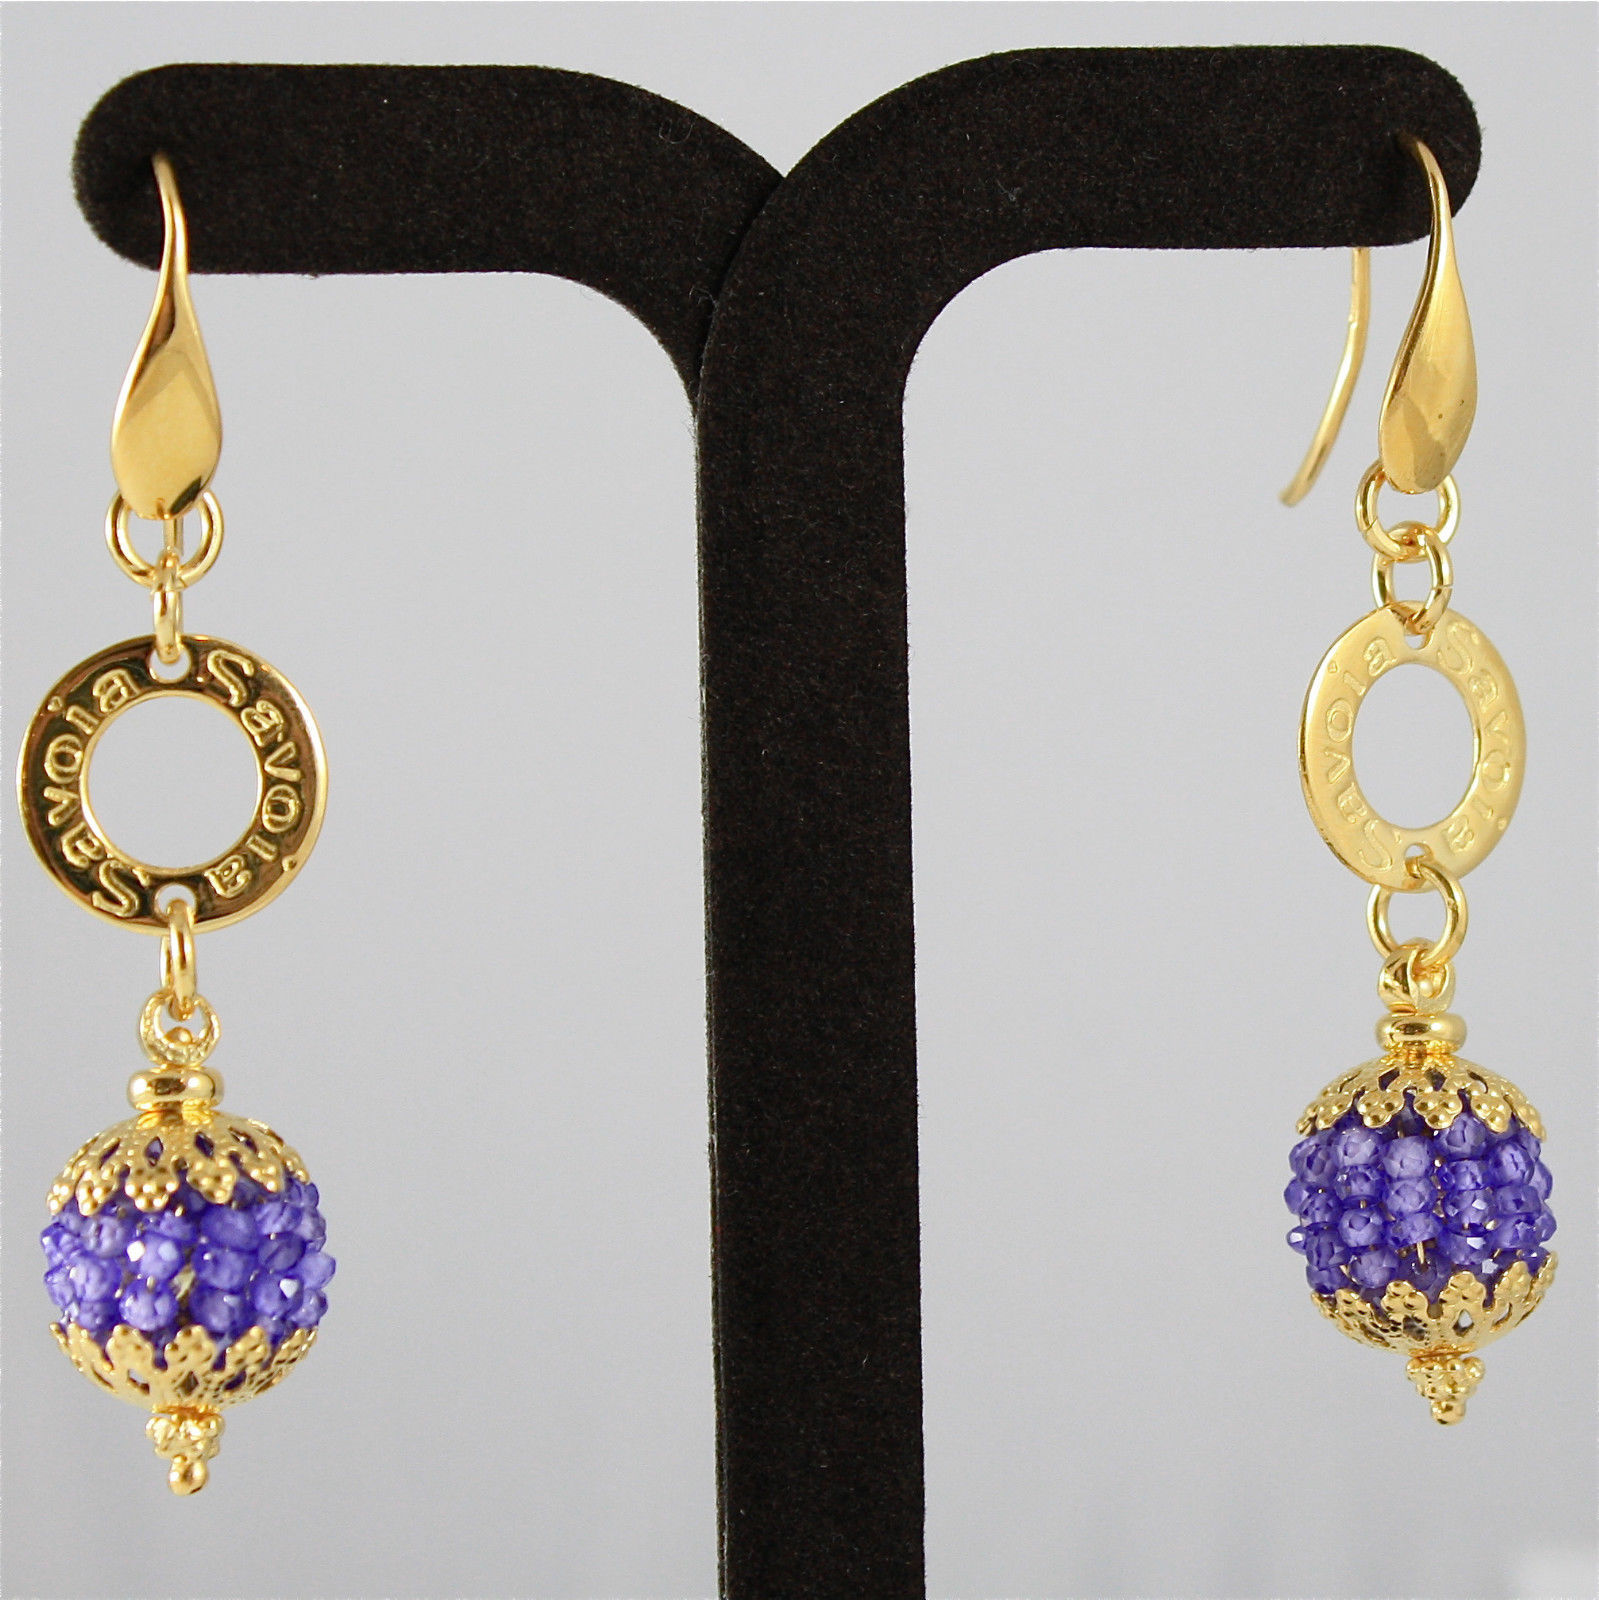 925 SILVER EARRINGS, GOLD PL, FACETED AMETHYST, MADE IN ITALY BY SAVOIA JEWELS